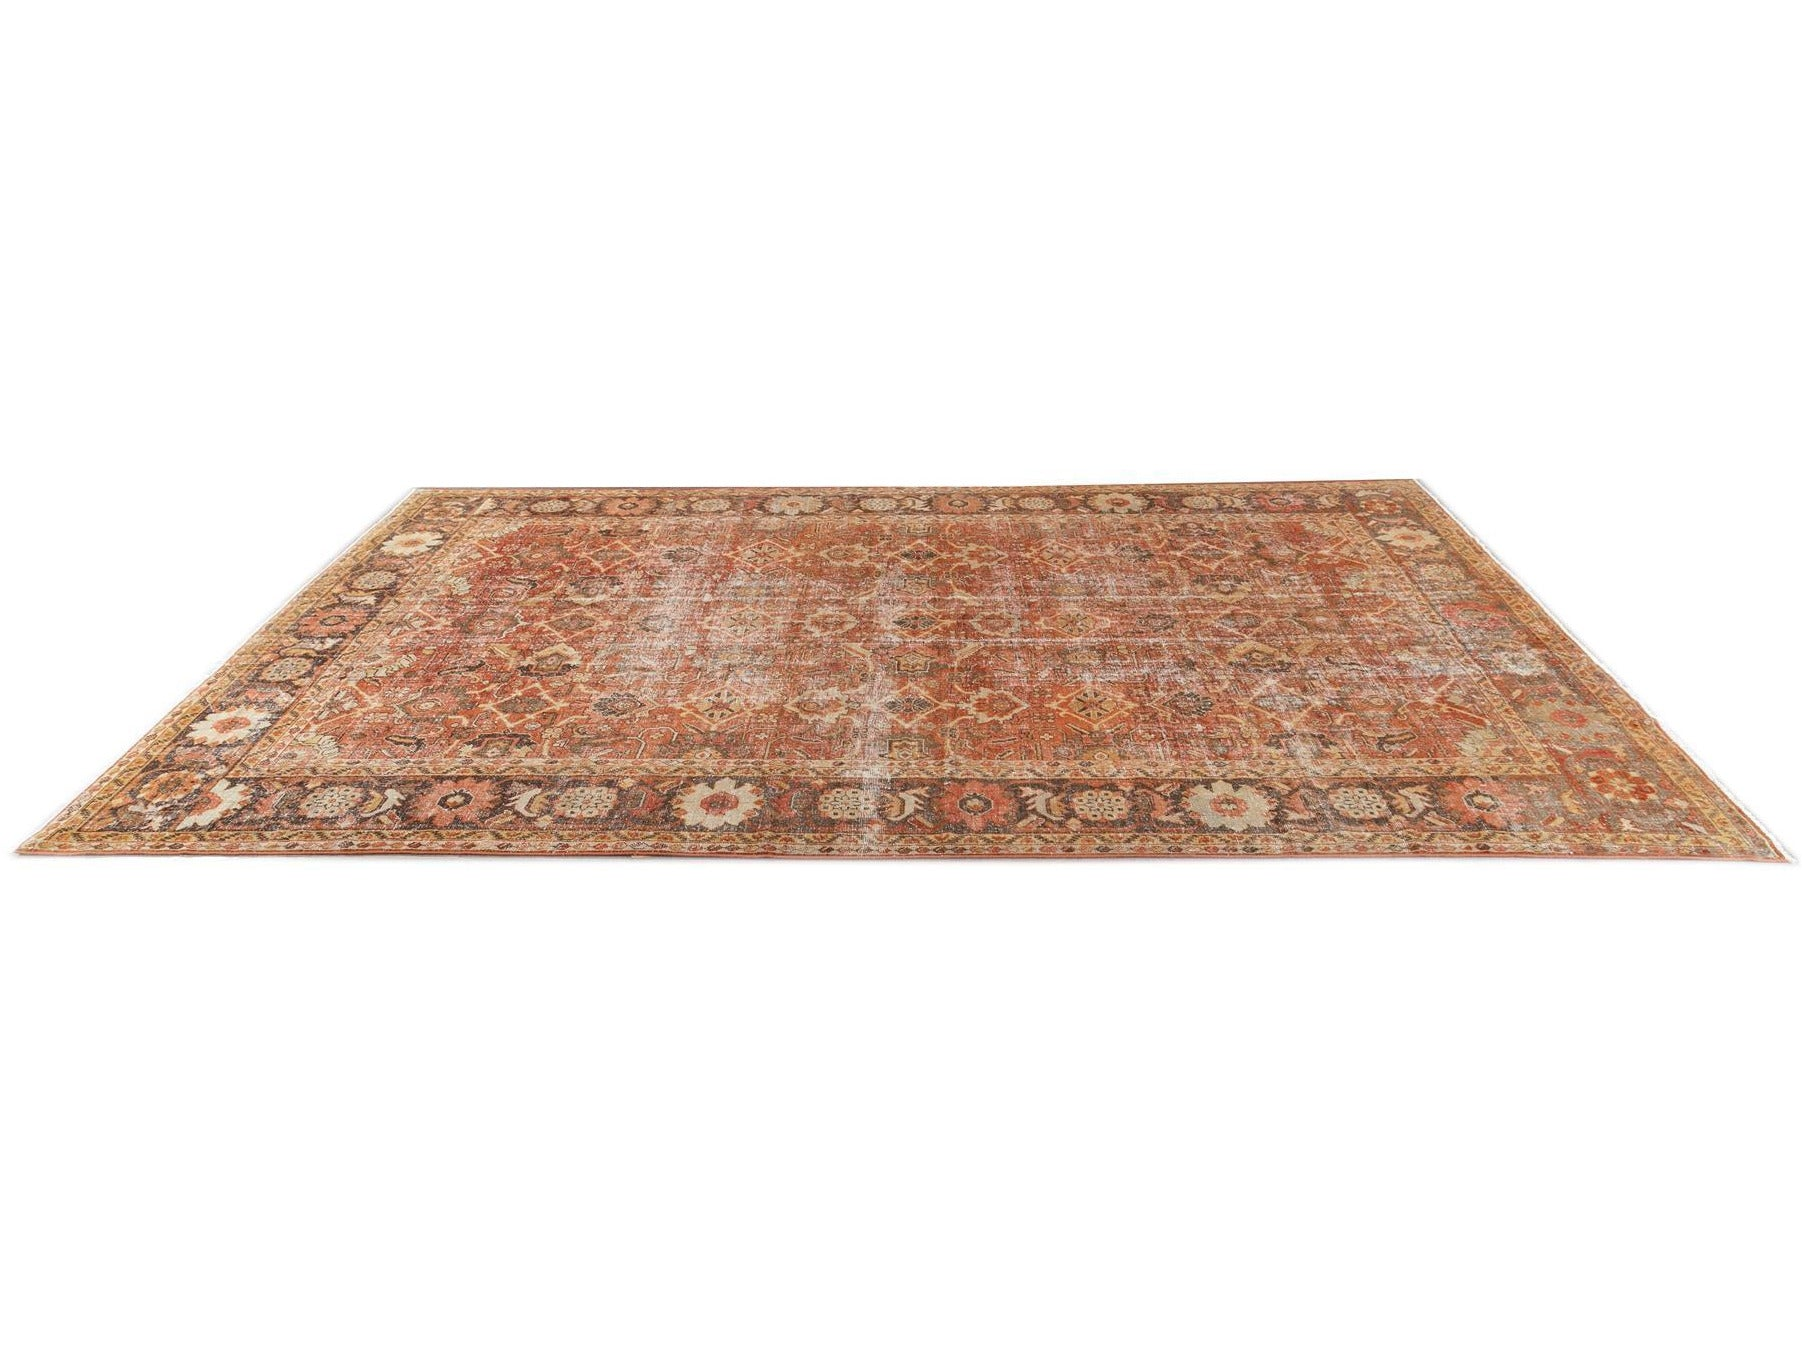 Early 20th Century Antique Mahal Oversize Wool Rug, 11' x 17'